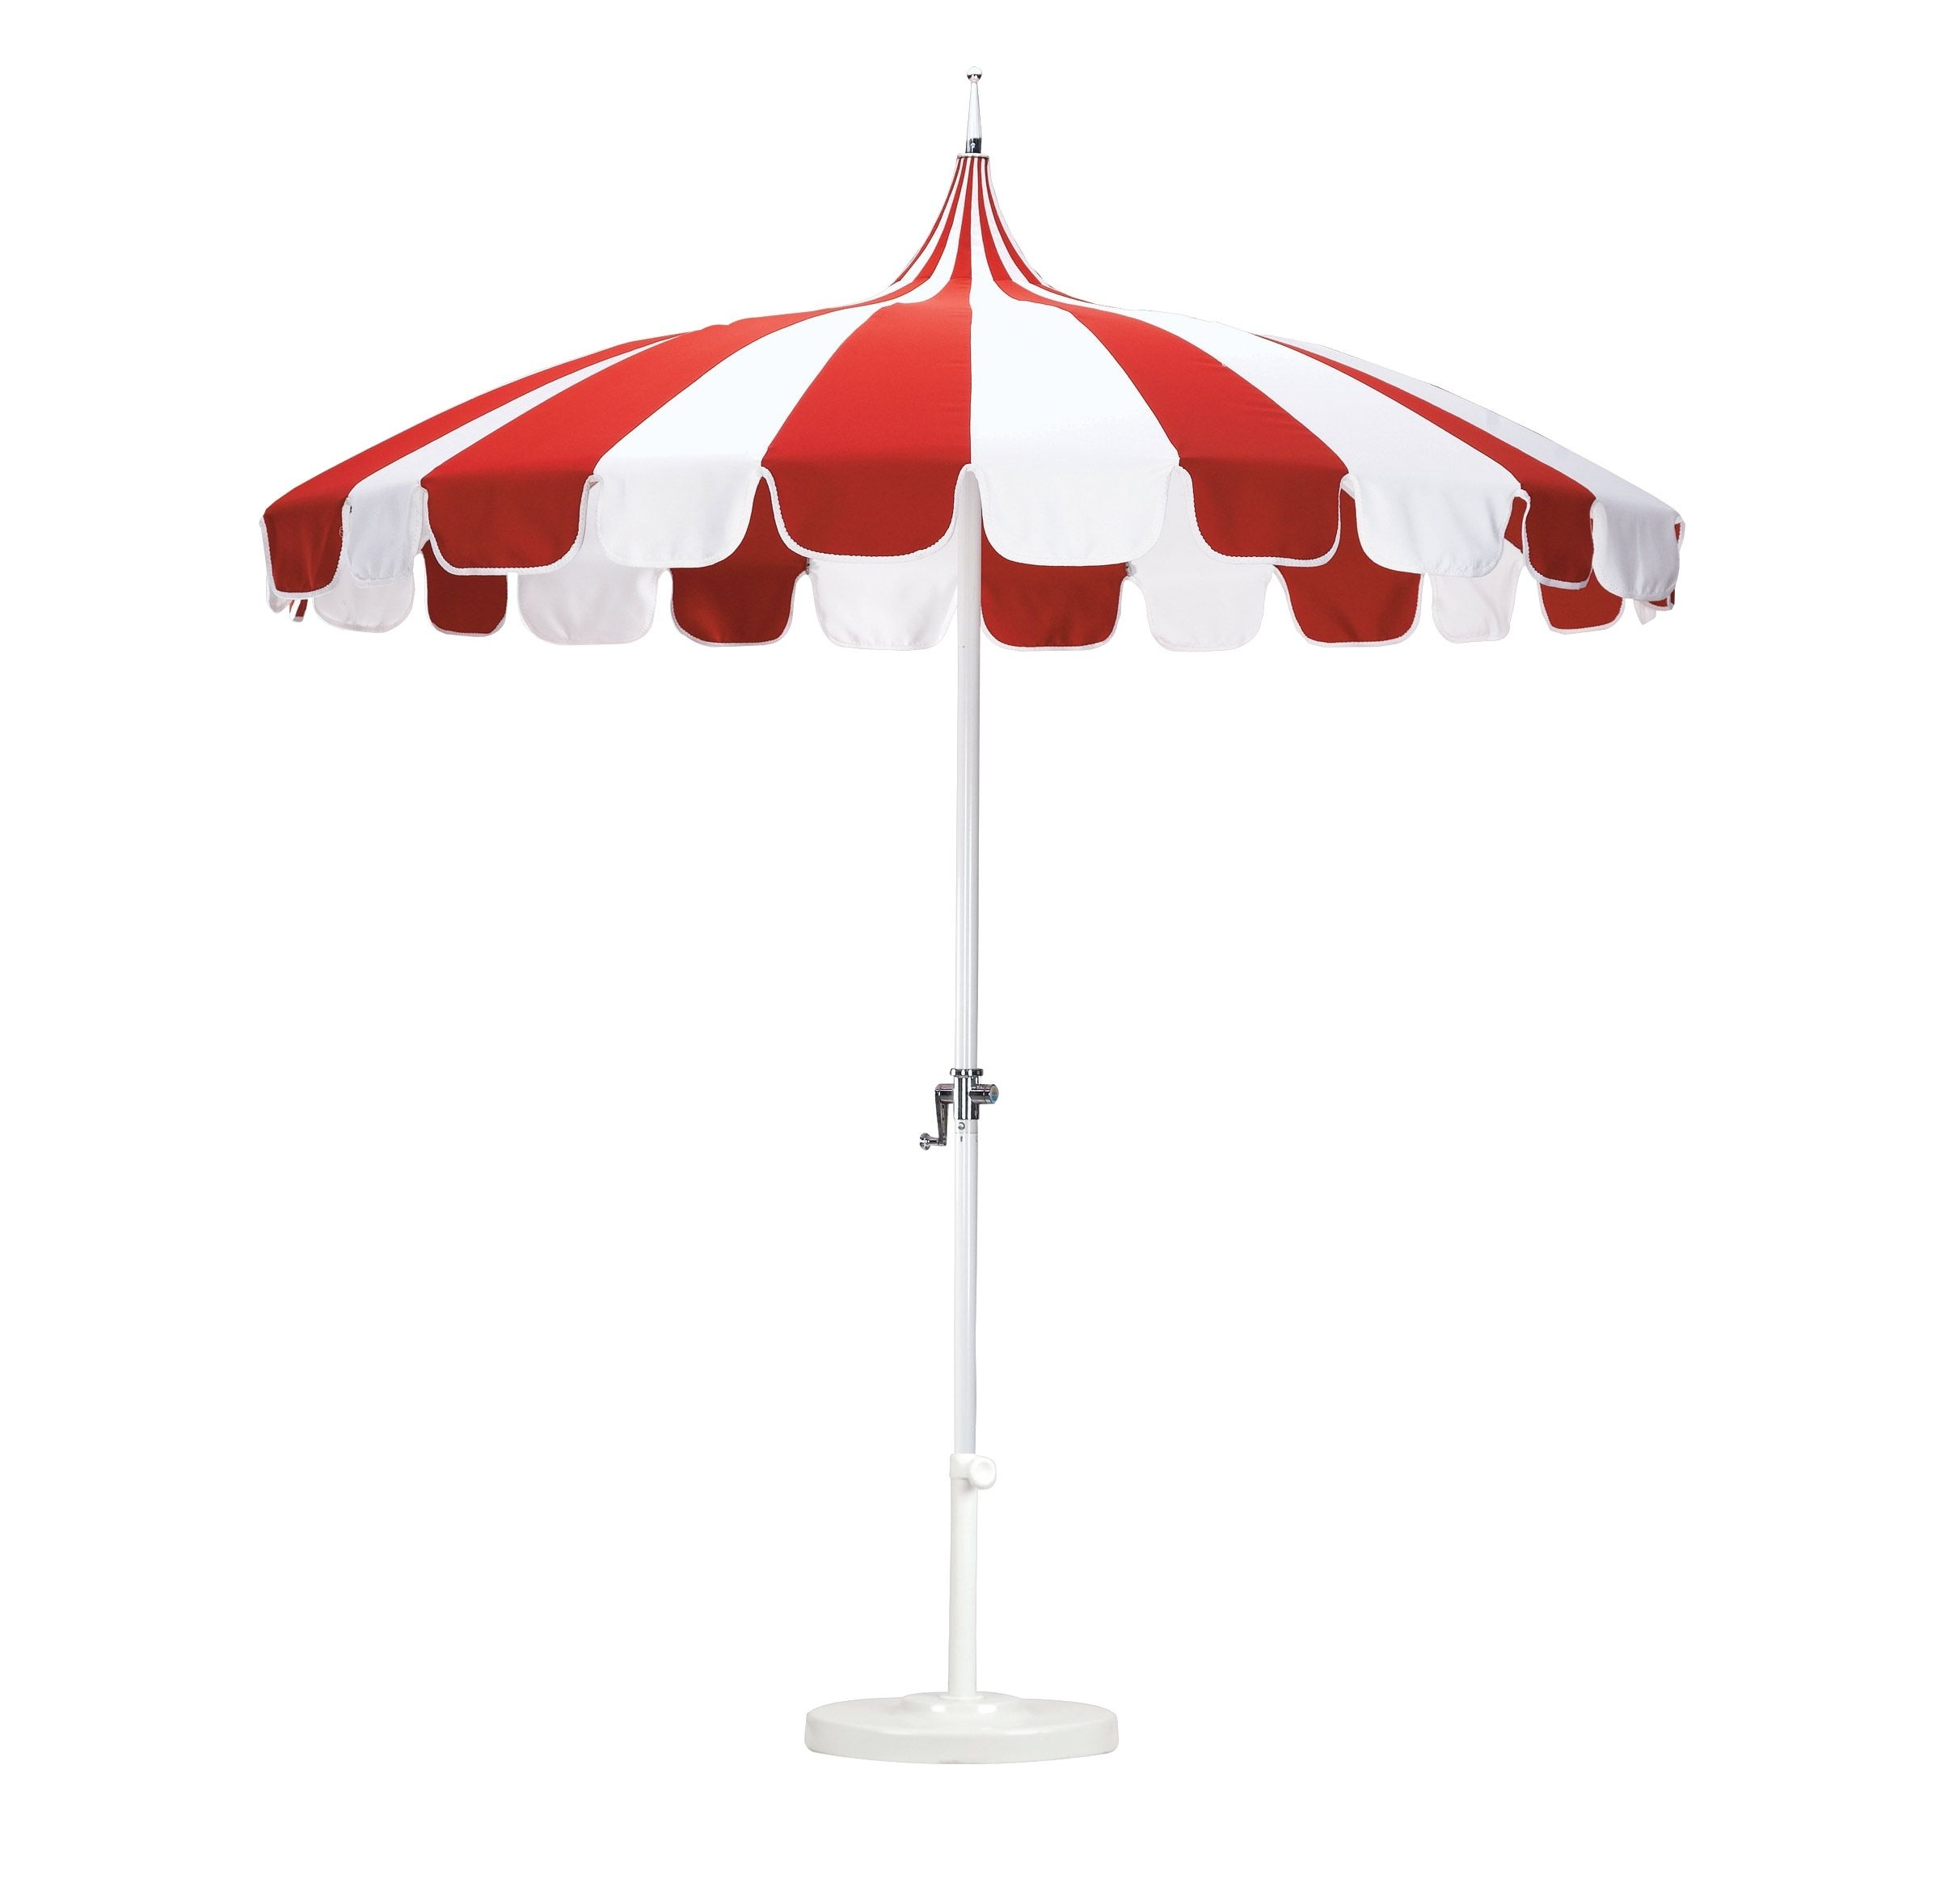 Popular Sunbrella Patio Umbrella Look More At Http://besthomezone Intended For Sunbrella Patio Umbrellas (View 12 of 20)